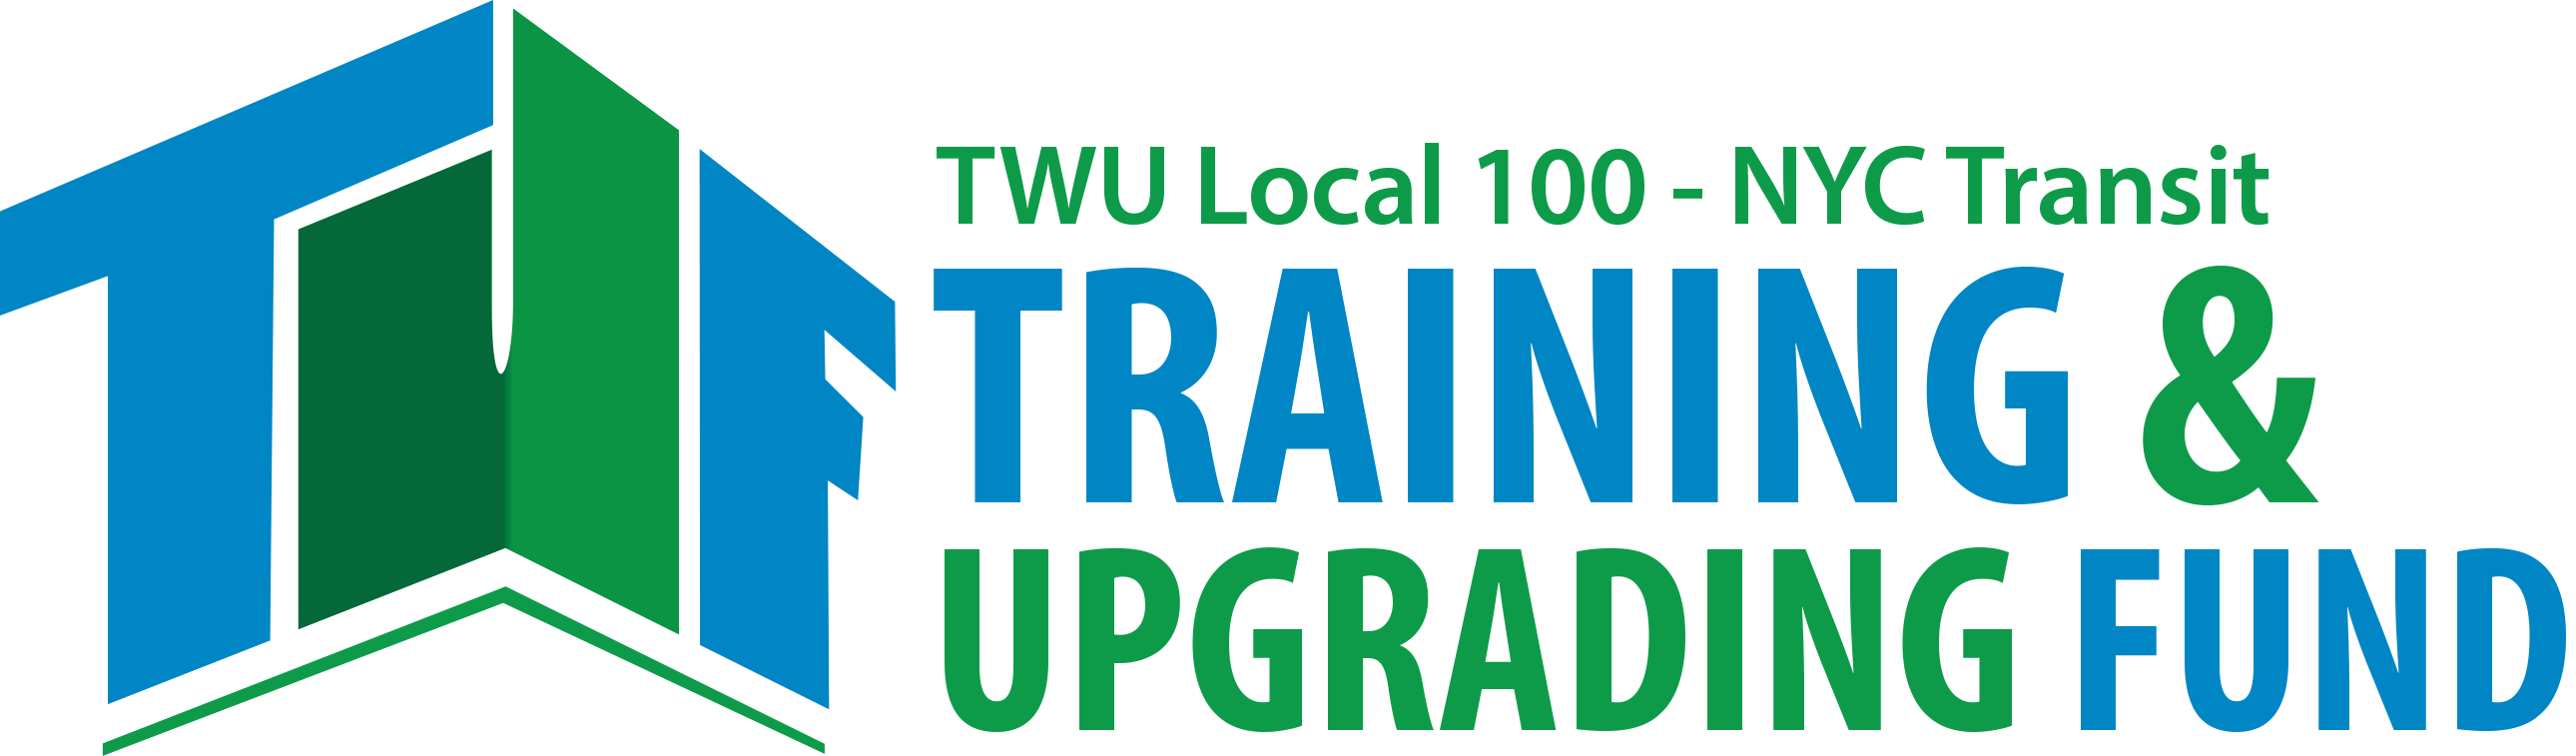 TWU Local 100 - NYCTA TUF